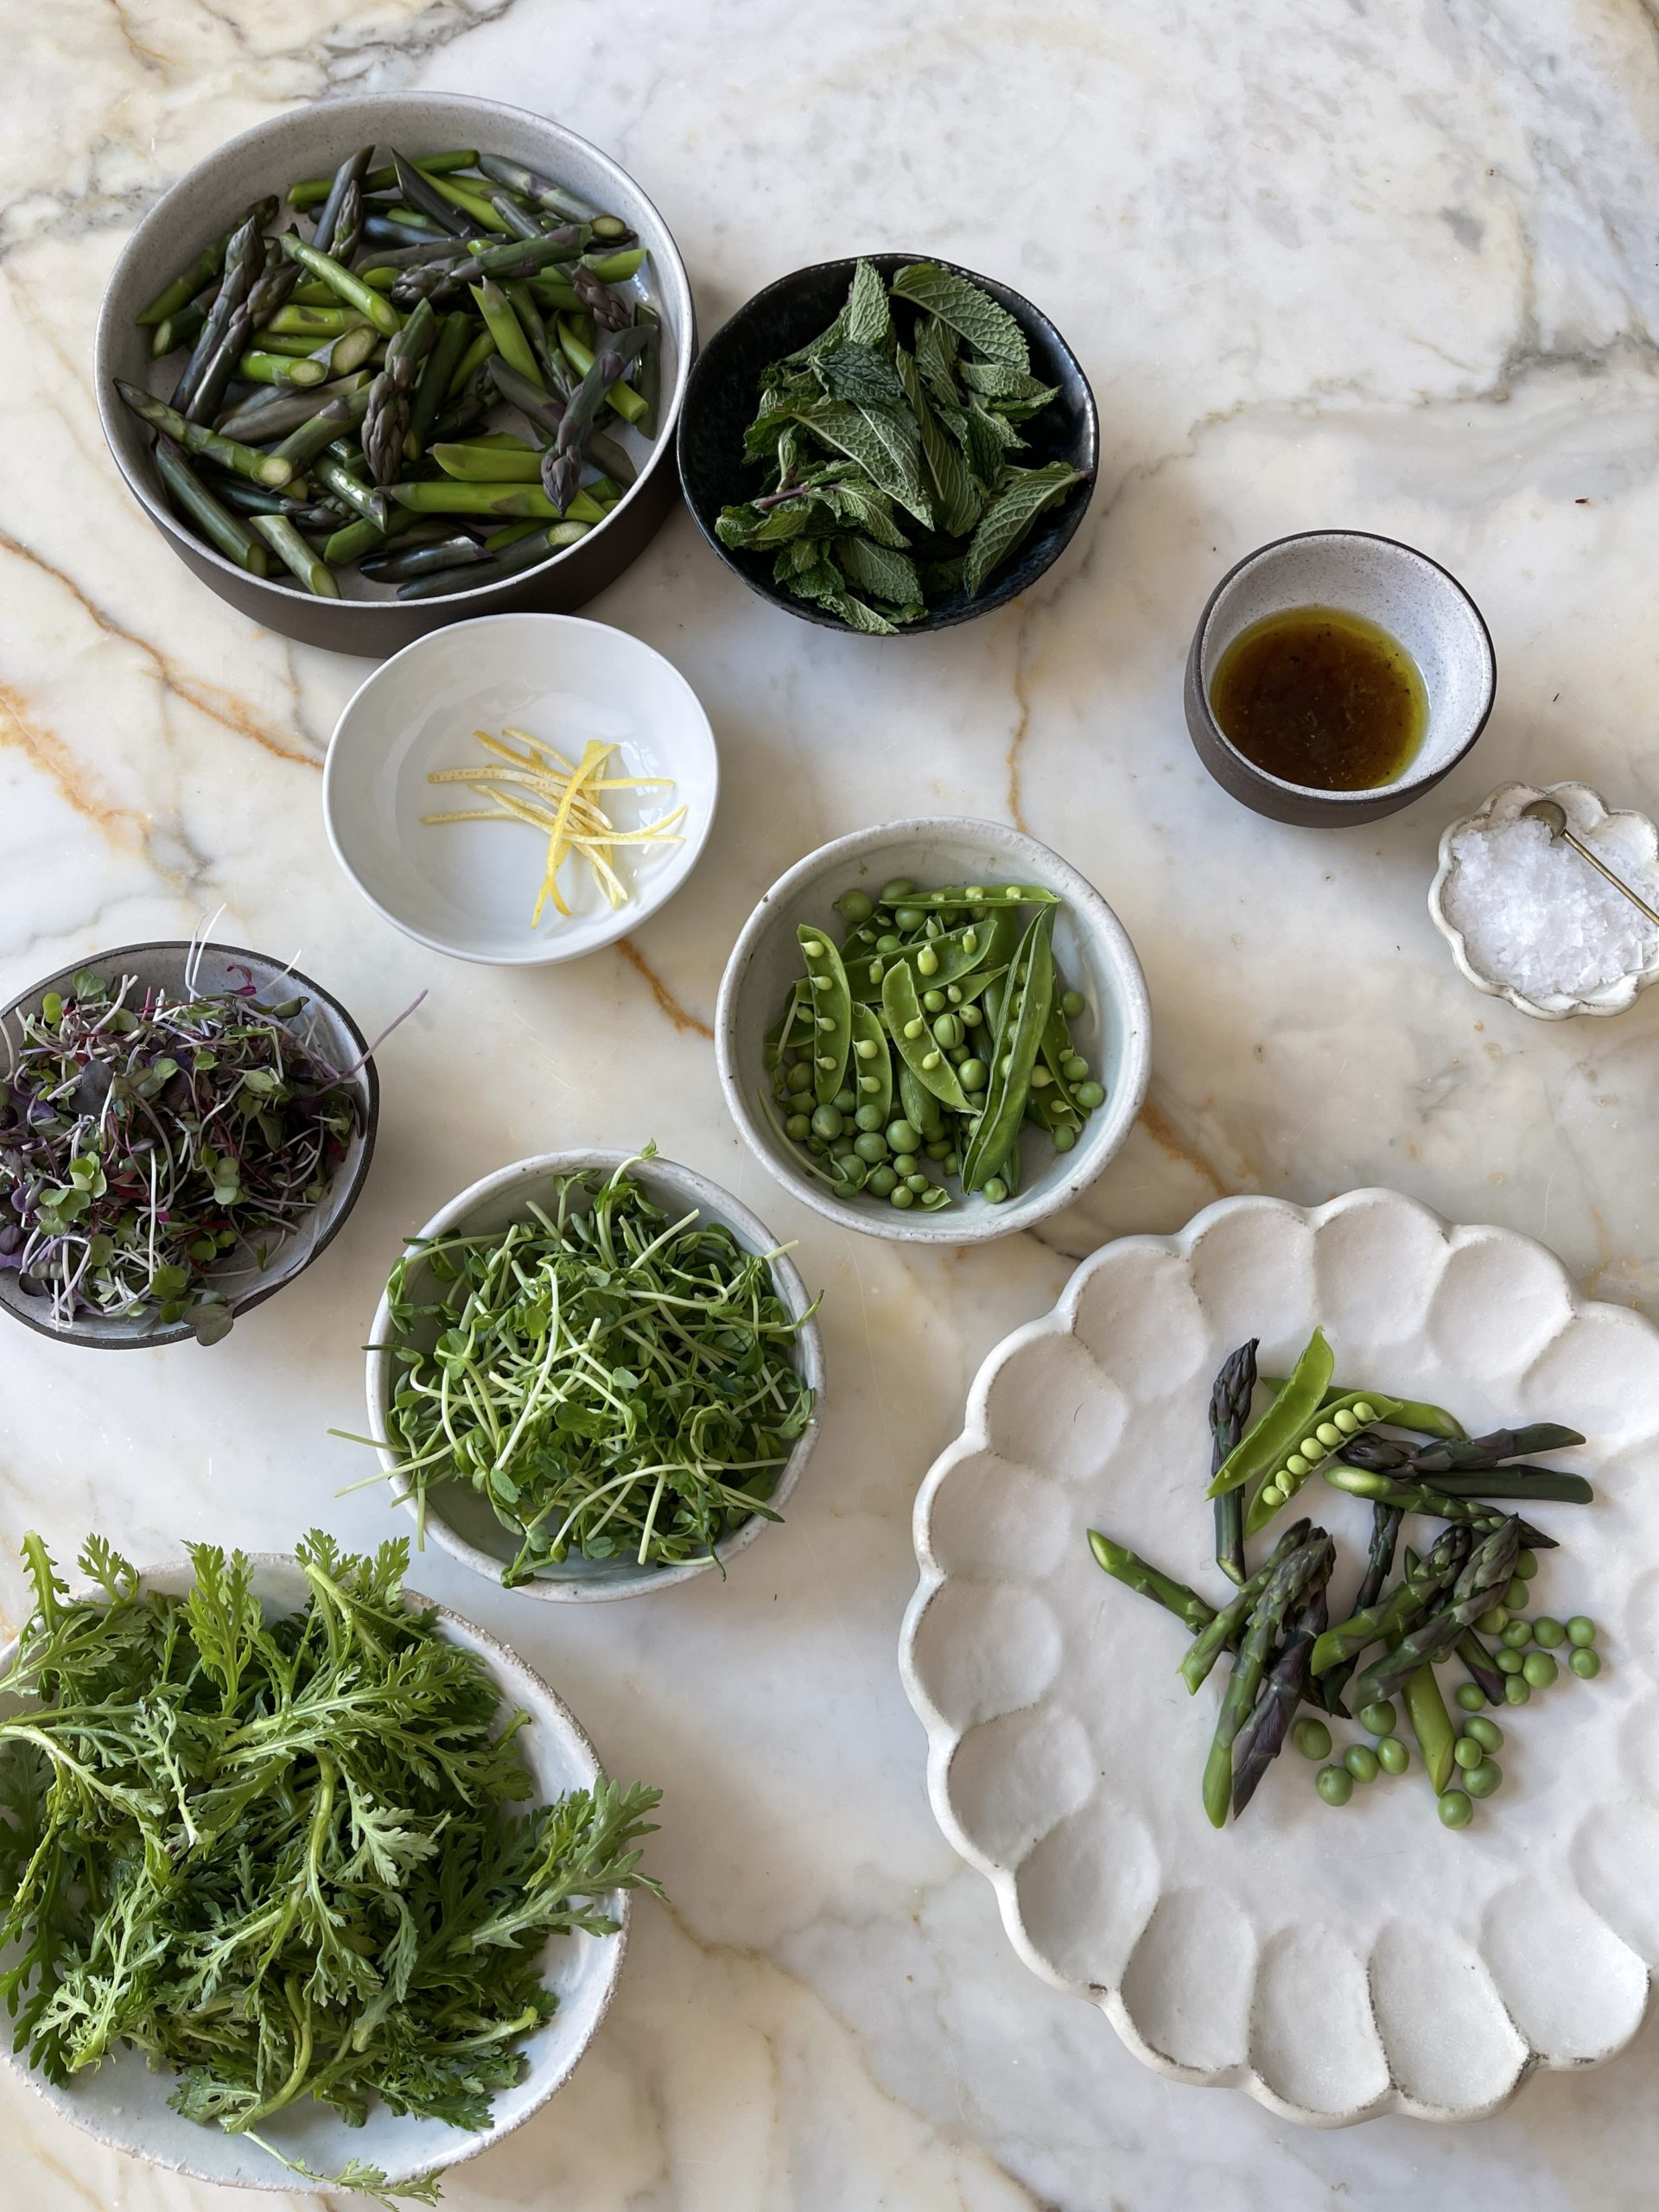 8 Summer Salad Recipes to Whip Up in a Pinch